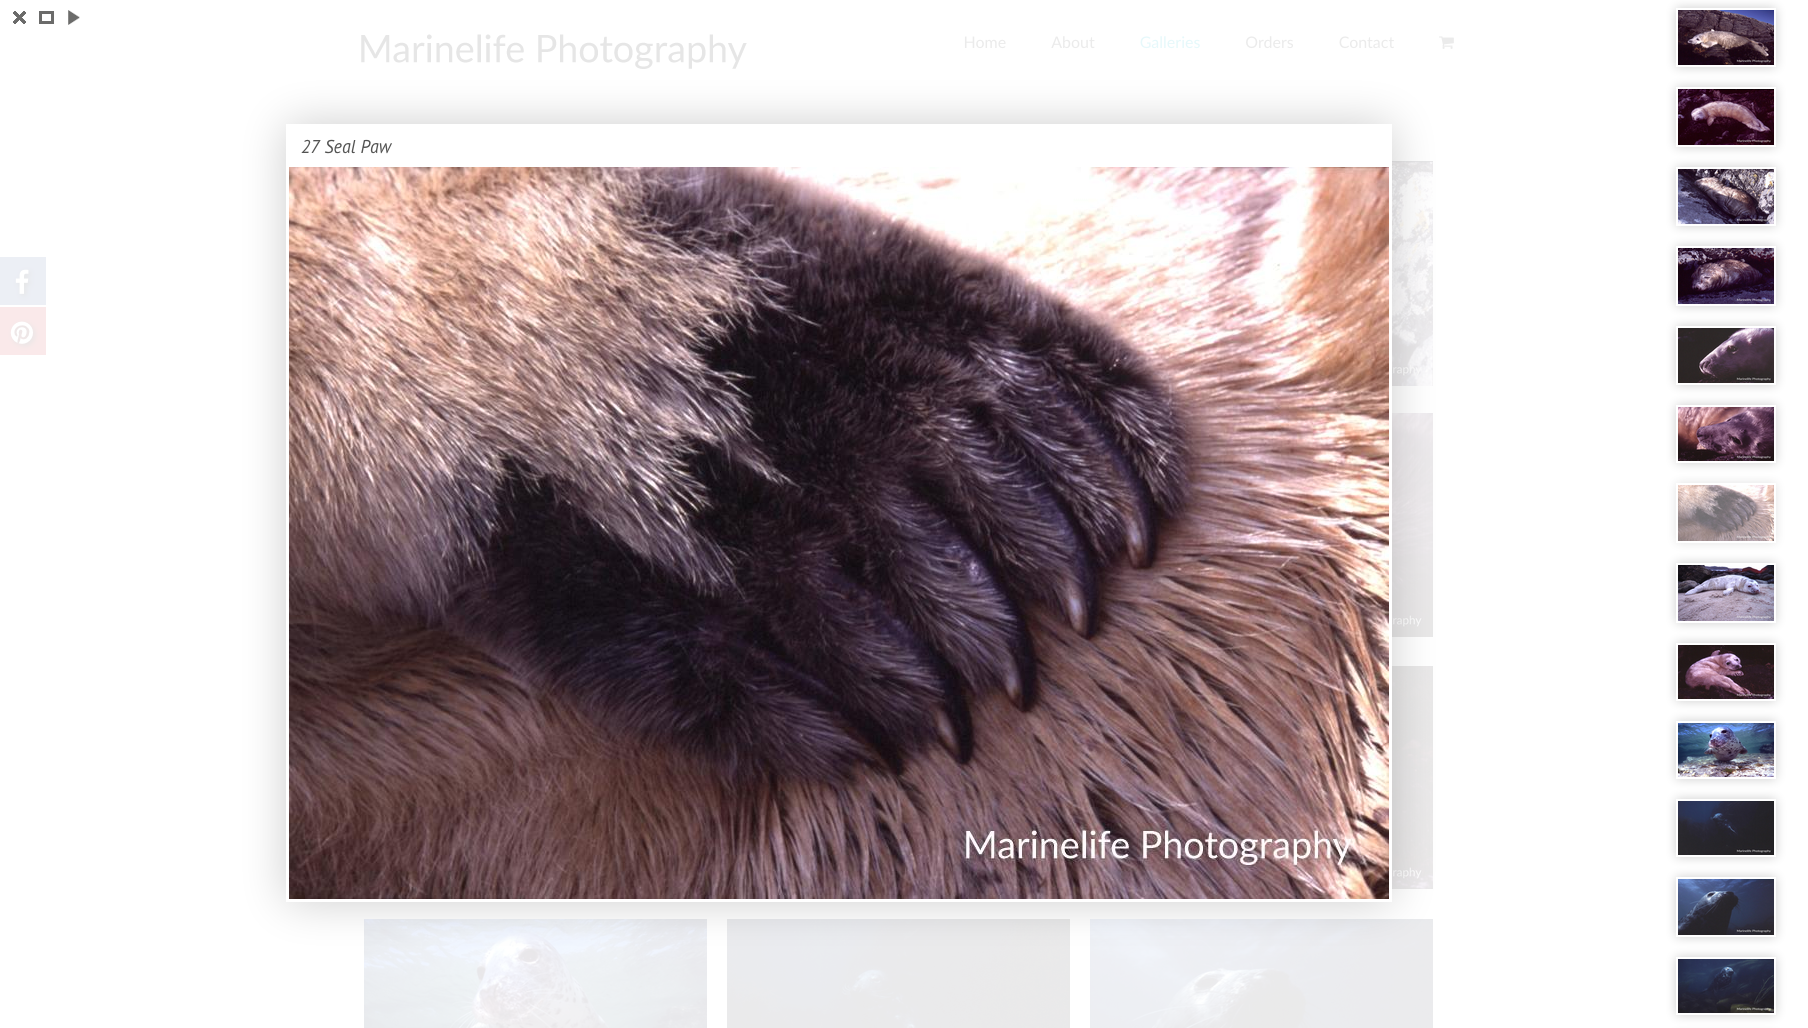 Marinelife Photography seal paw gallery image - web design by collective.digital